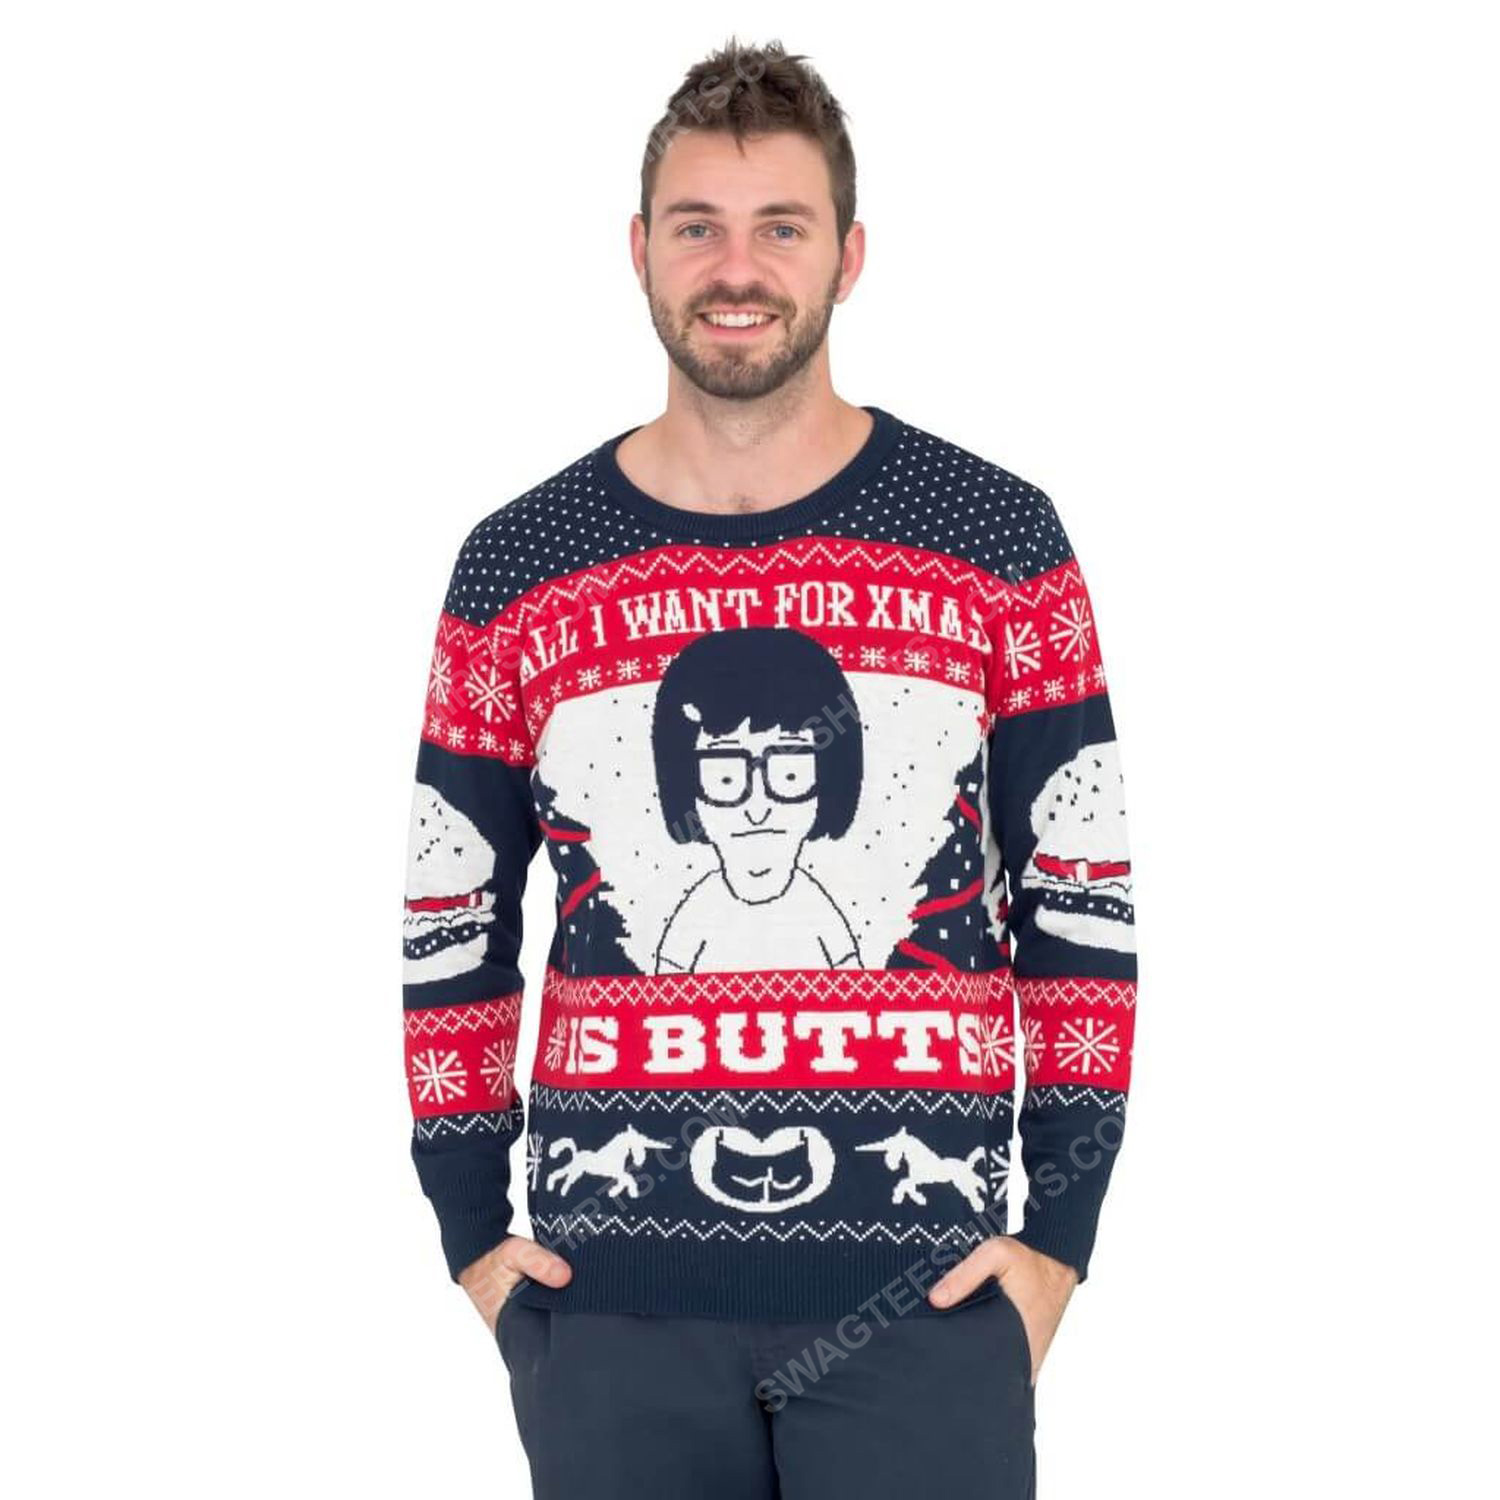 All i want for xmas is butts tina from bob's burgers ugly christmas sweater 2 - Copy